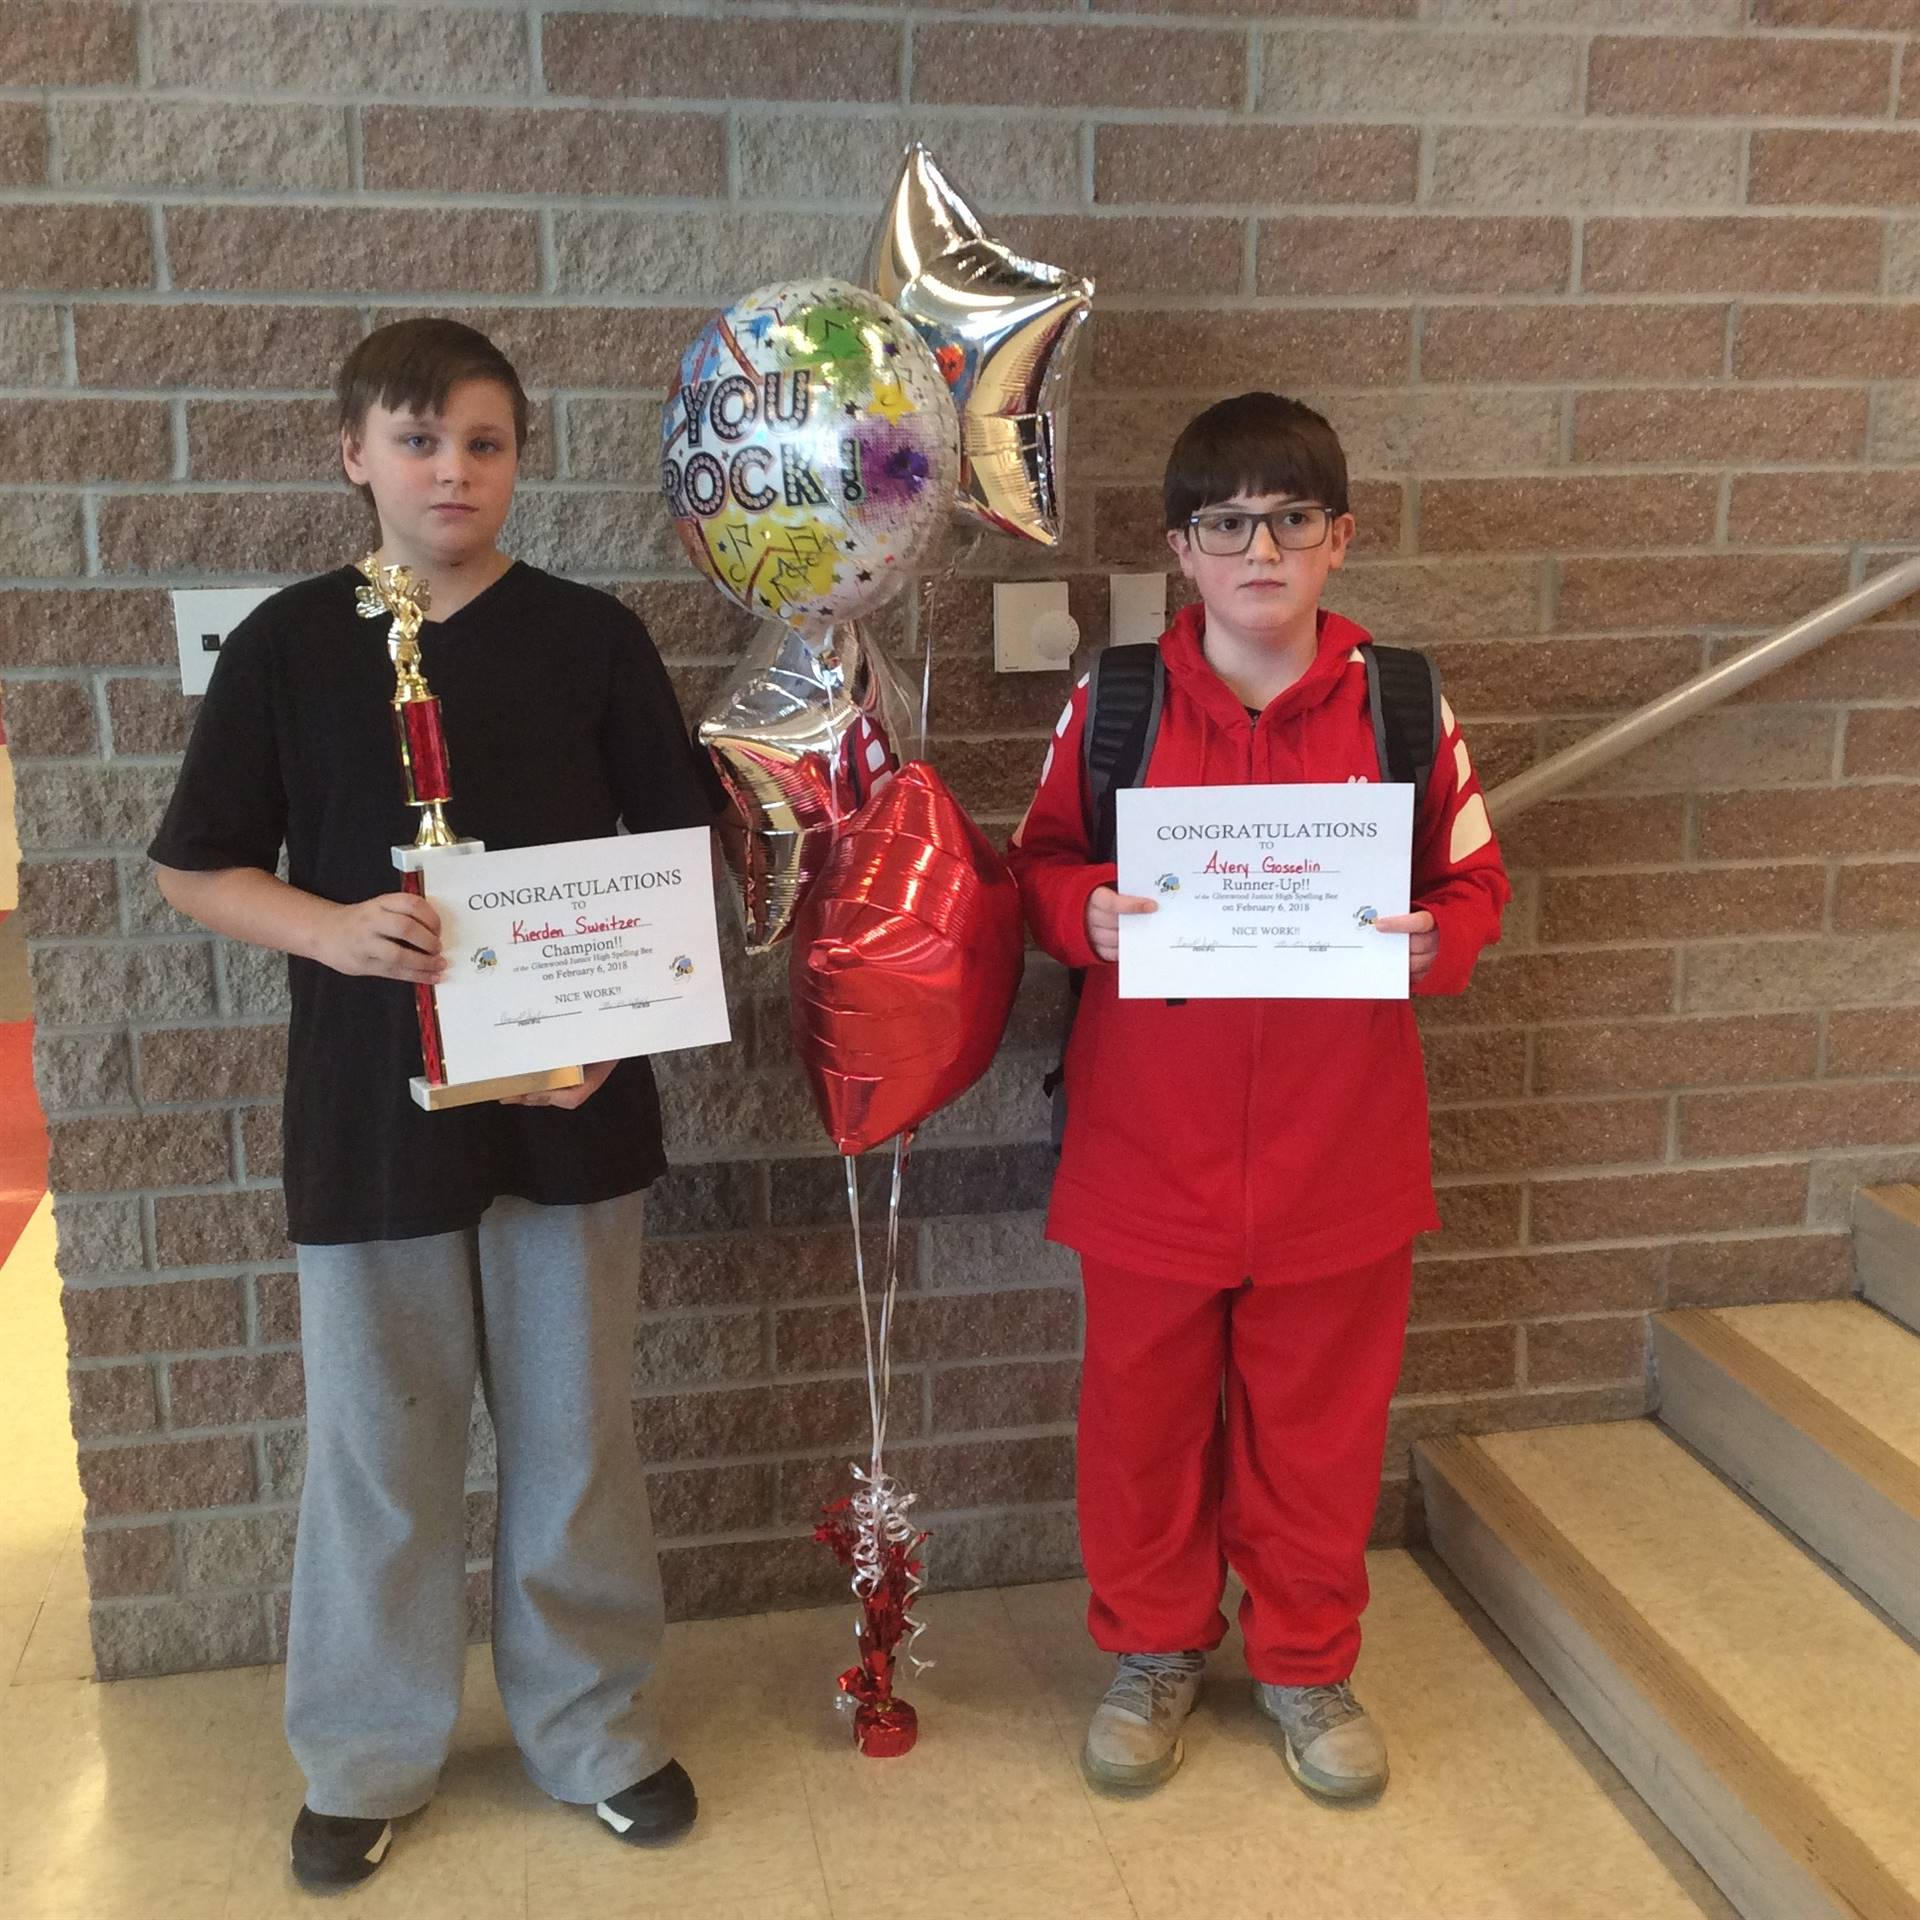 Avery Gosselin & Kierden Sweitzer - Jr. High Spelling Bee Winners (2018)